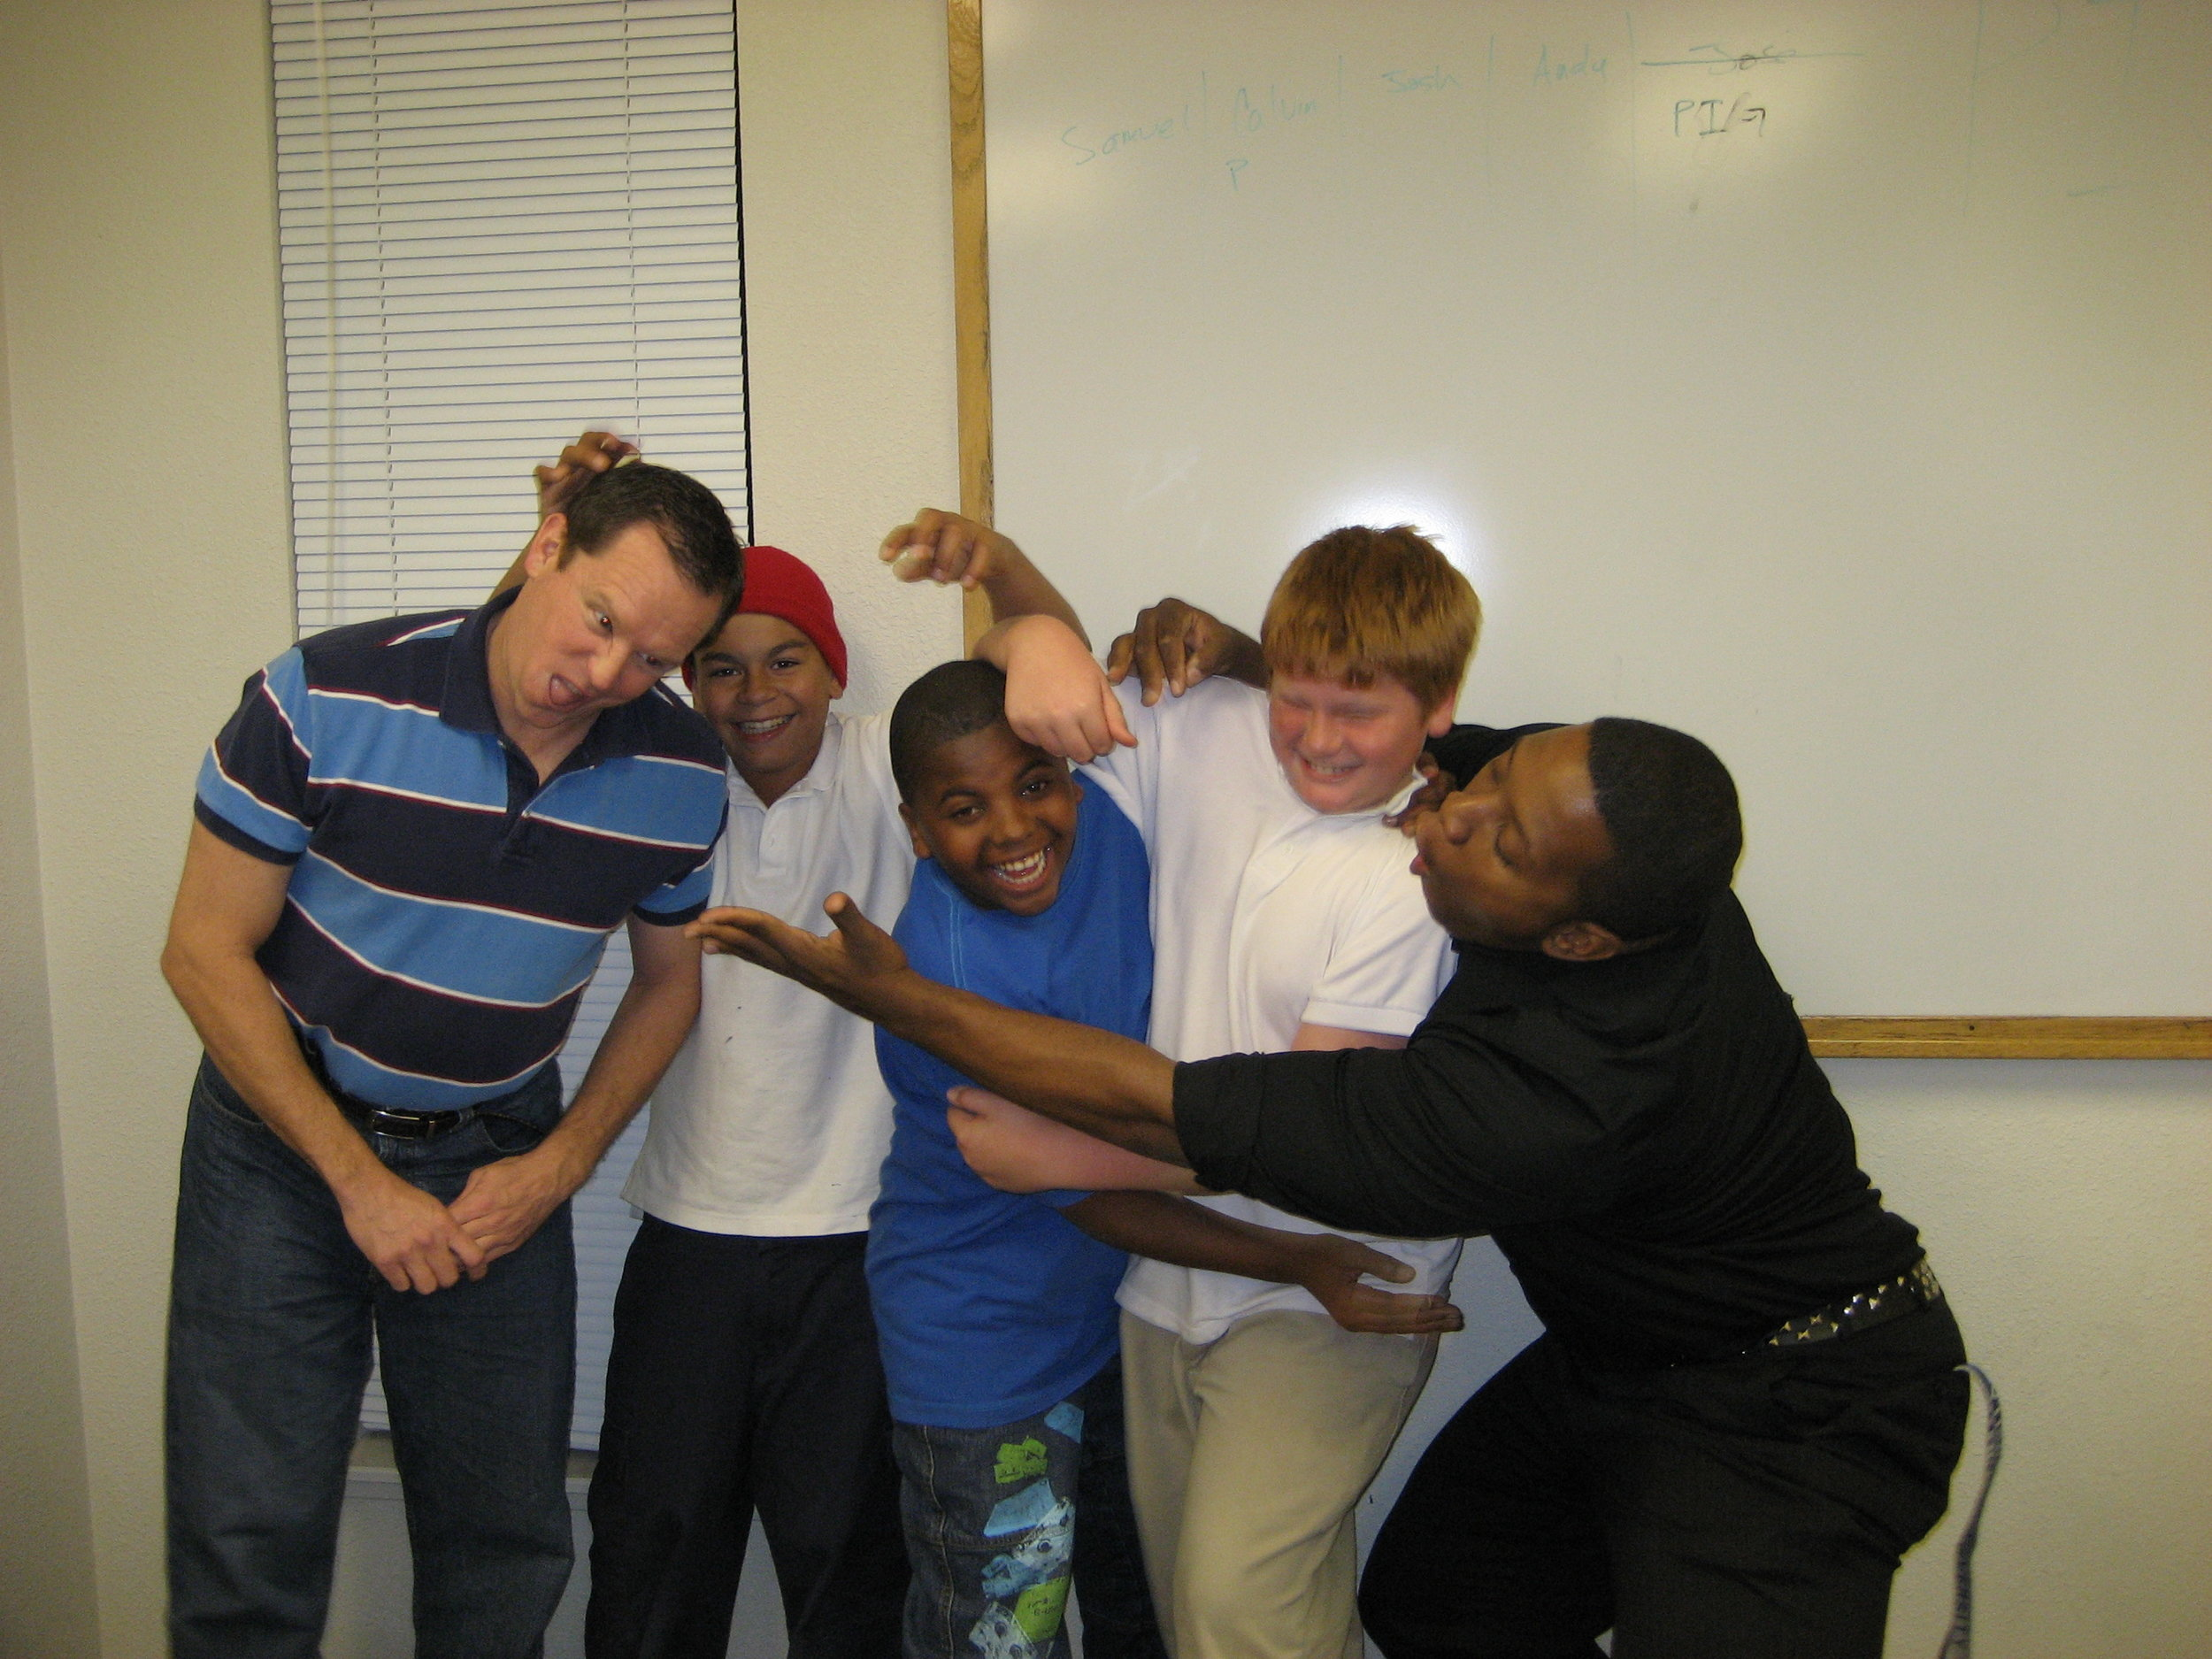 Funny Faces - Here Andrew and some BCM students take a silly photo. (Picture taken in 2006)